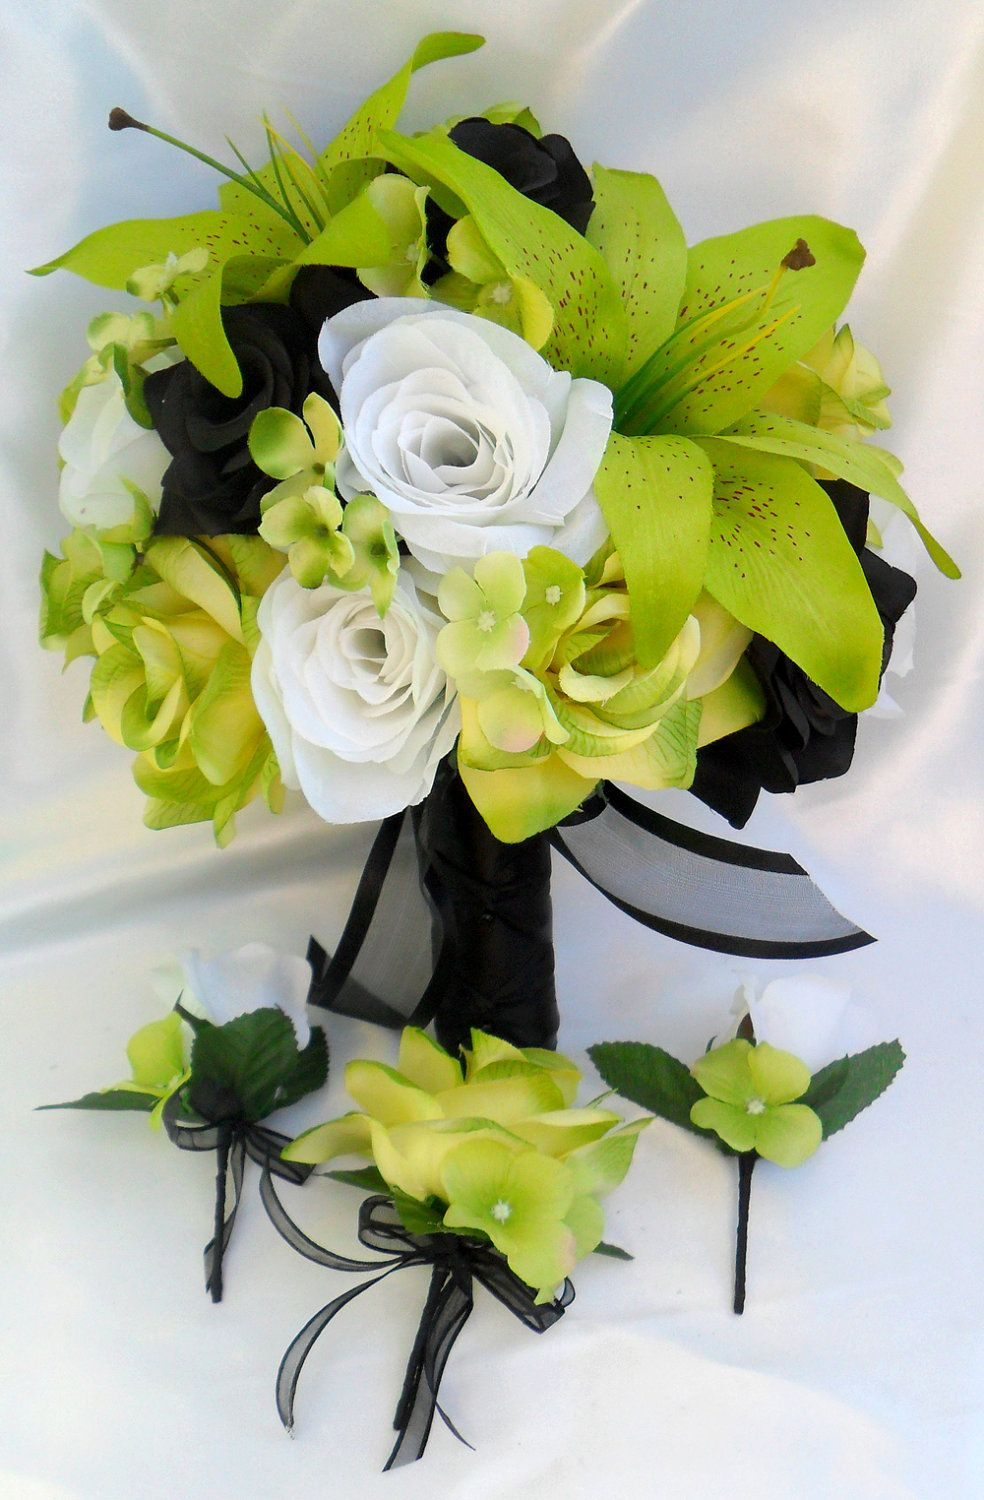 17pcs Wedding Bridal Bouquet Set Decoration Package Silk Flowers WHITE BLACK GREEN Lily Of Angeles